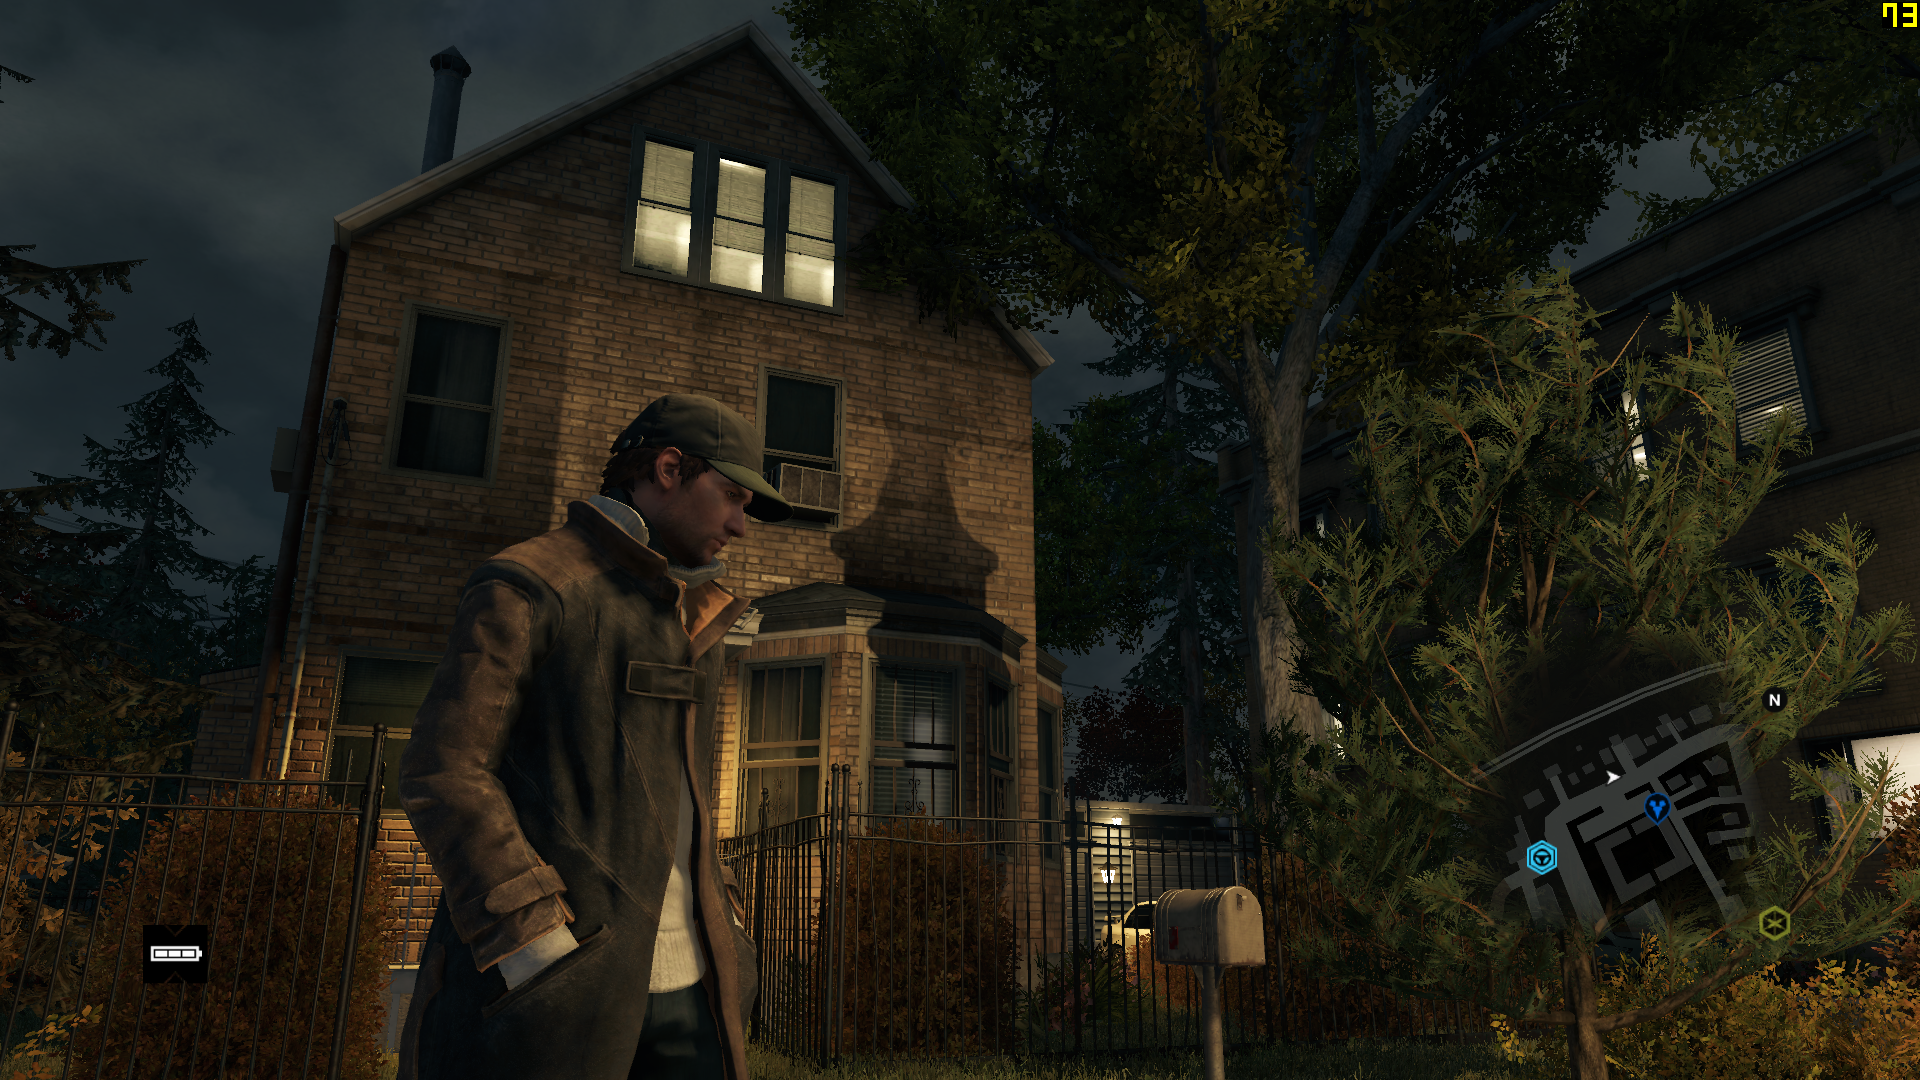 watch_dogs--003v4oin.png